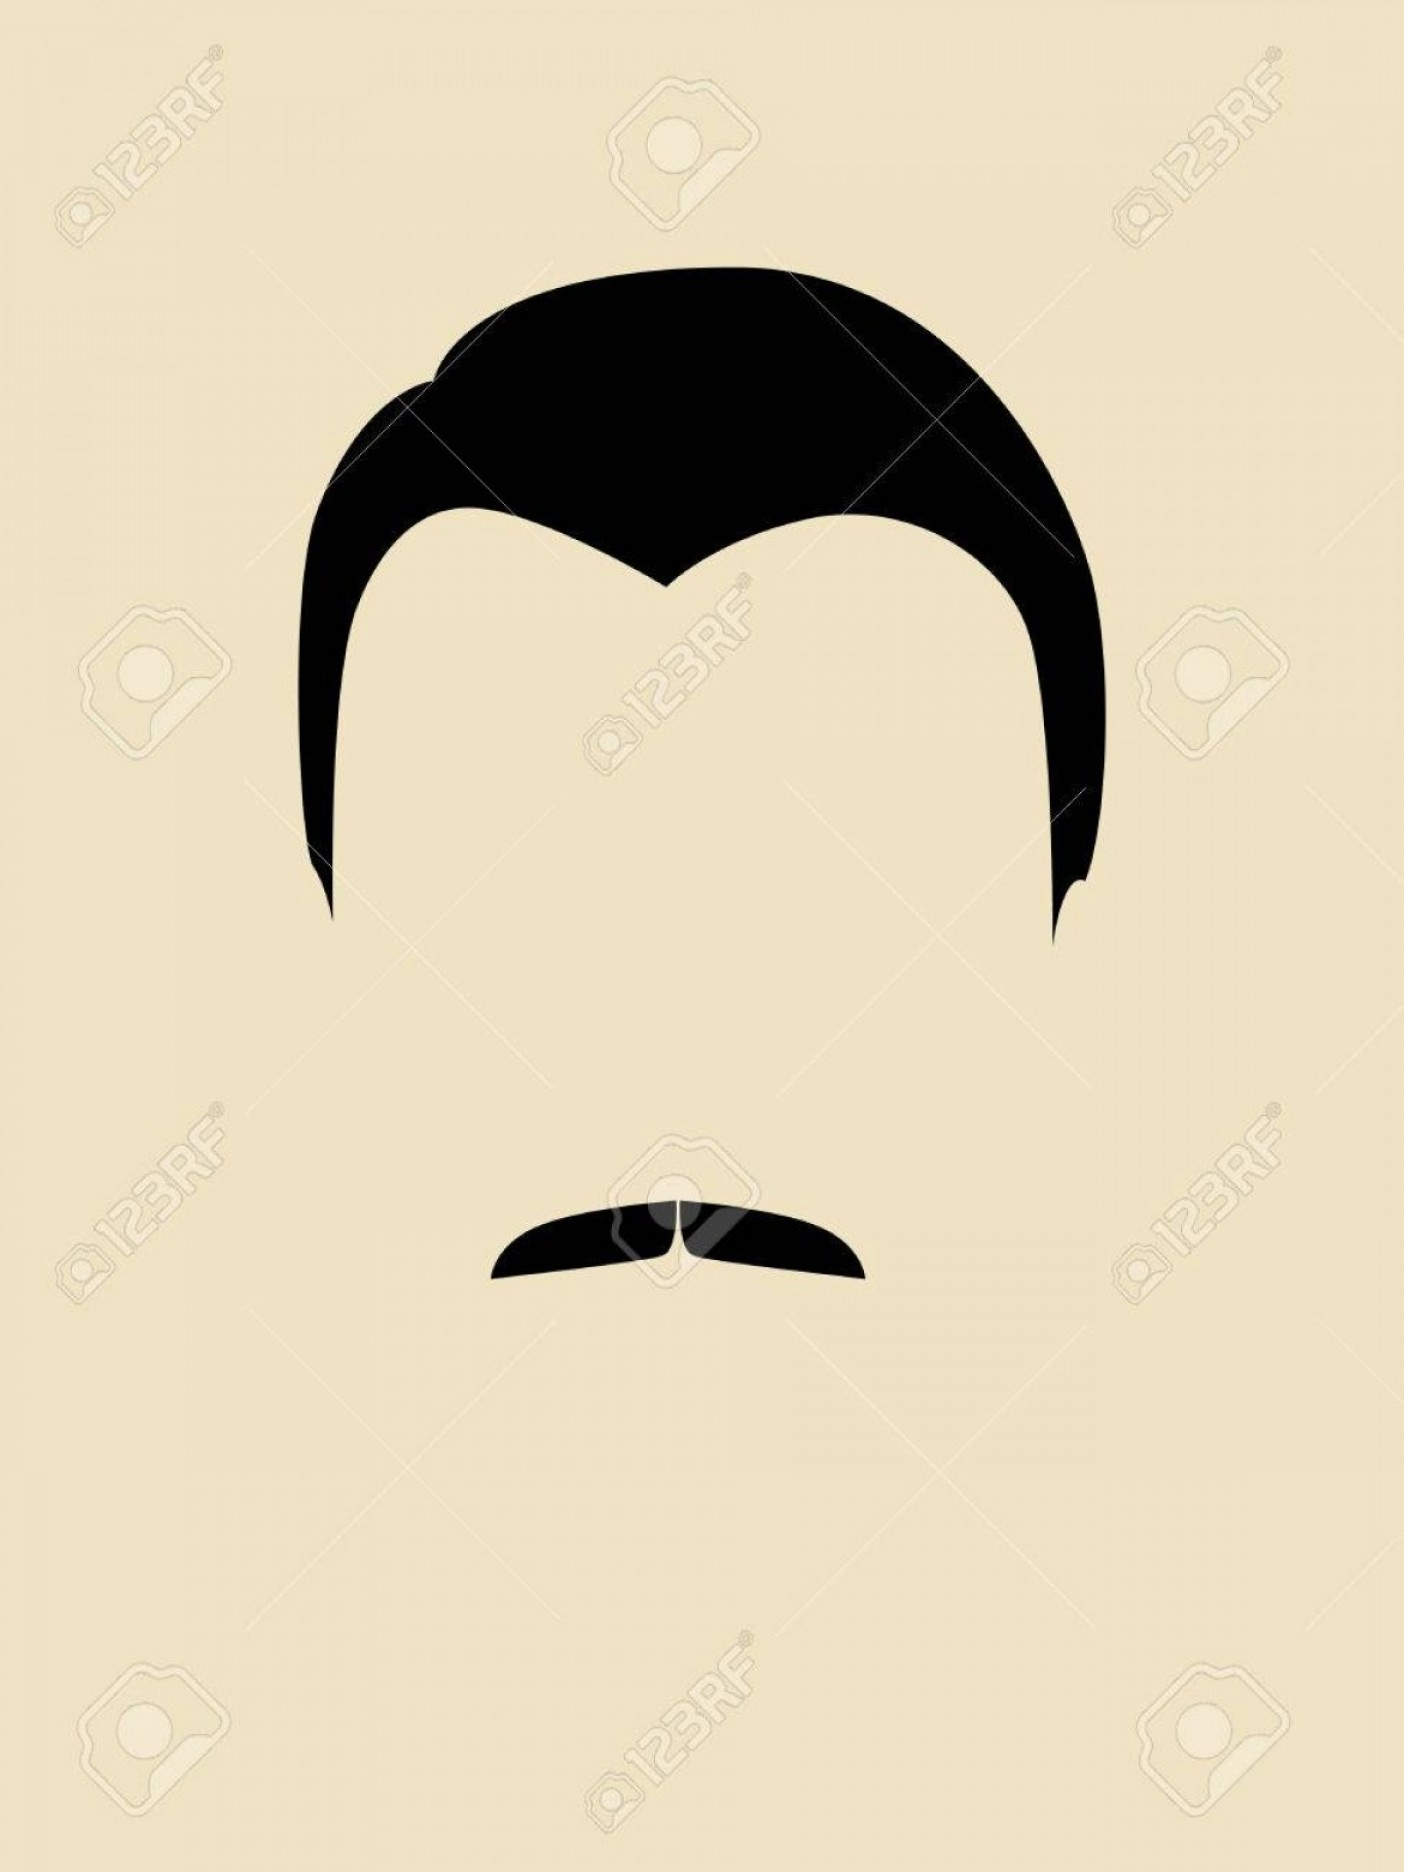 Mustache Face Vector: Photostock Vector Simple Graphic Of A Man Face With Mustache